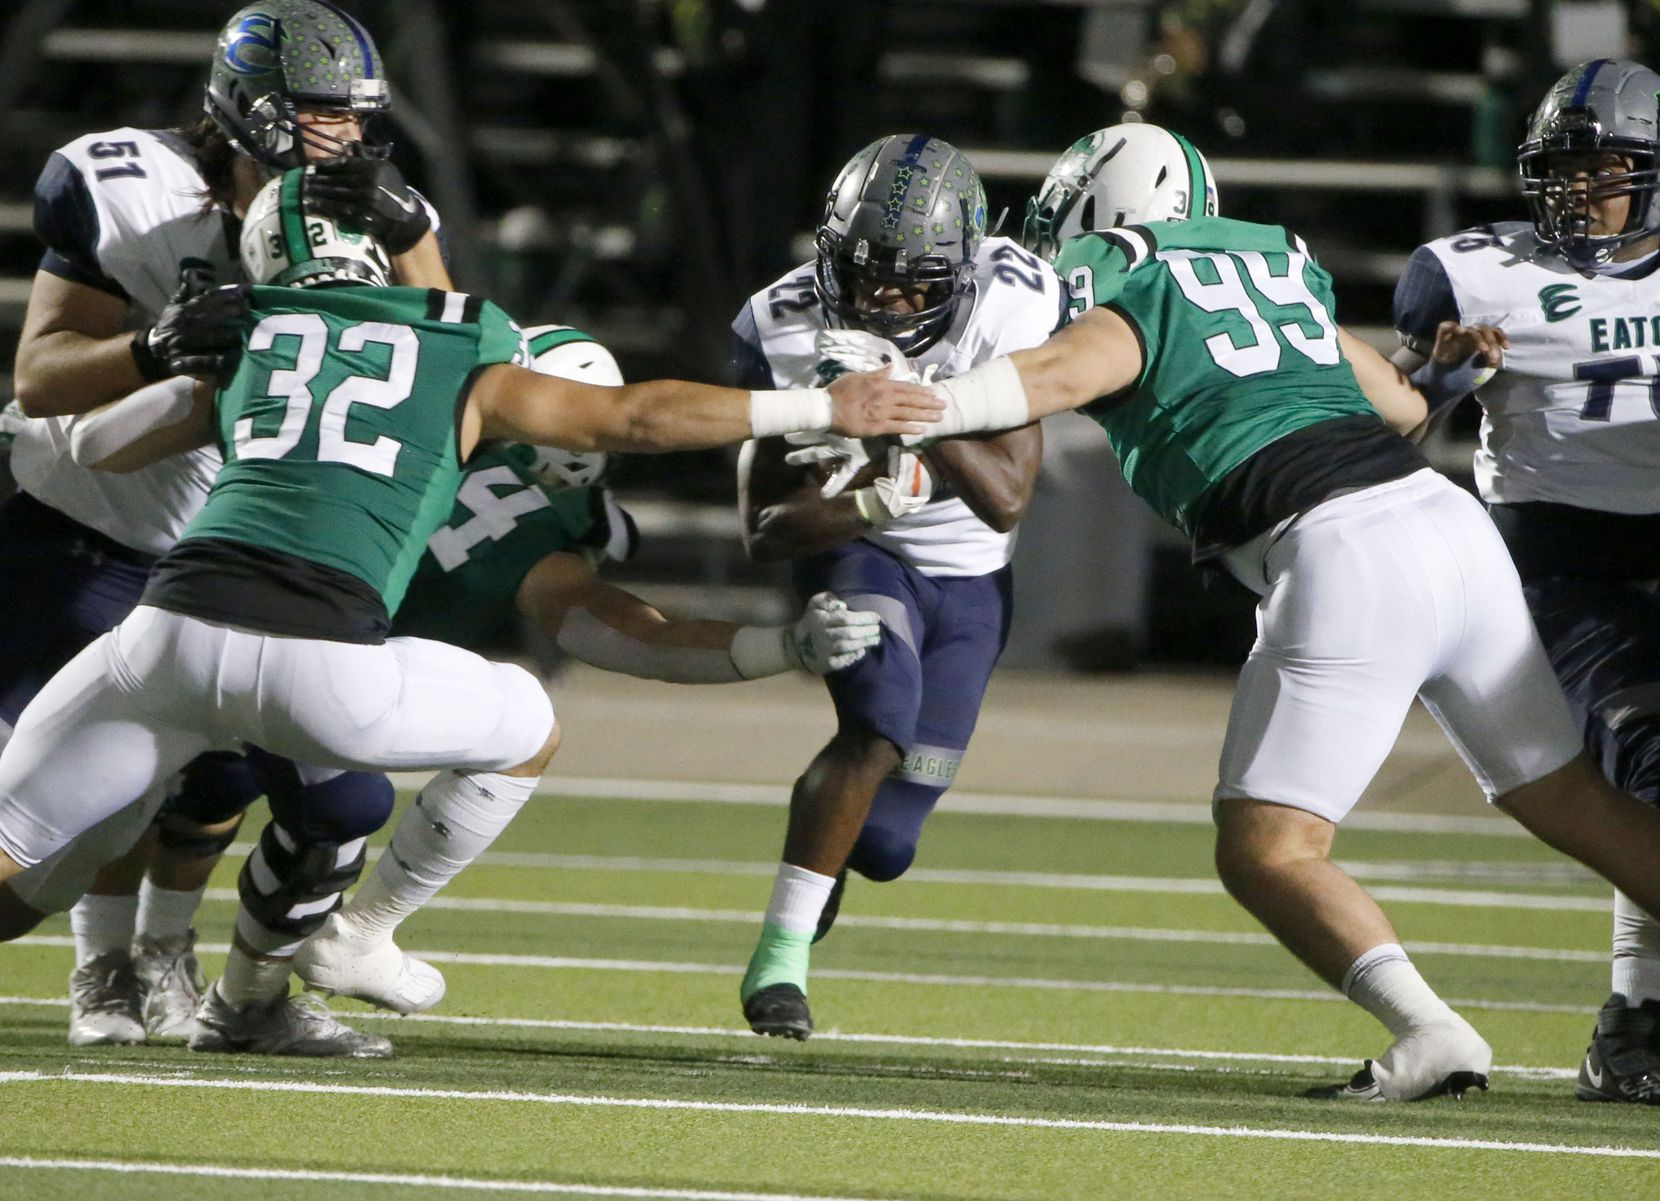 Southlake defenders Benecio Porras (32) and Andrew Askew (99) prepare to tackle Eaton running back Jahbez Hawkins (22) during their high school football game on Nov. 20, 2020.